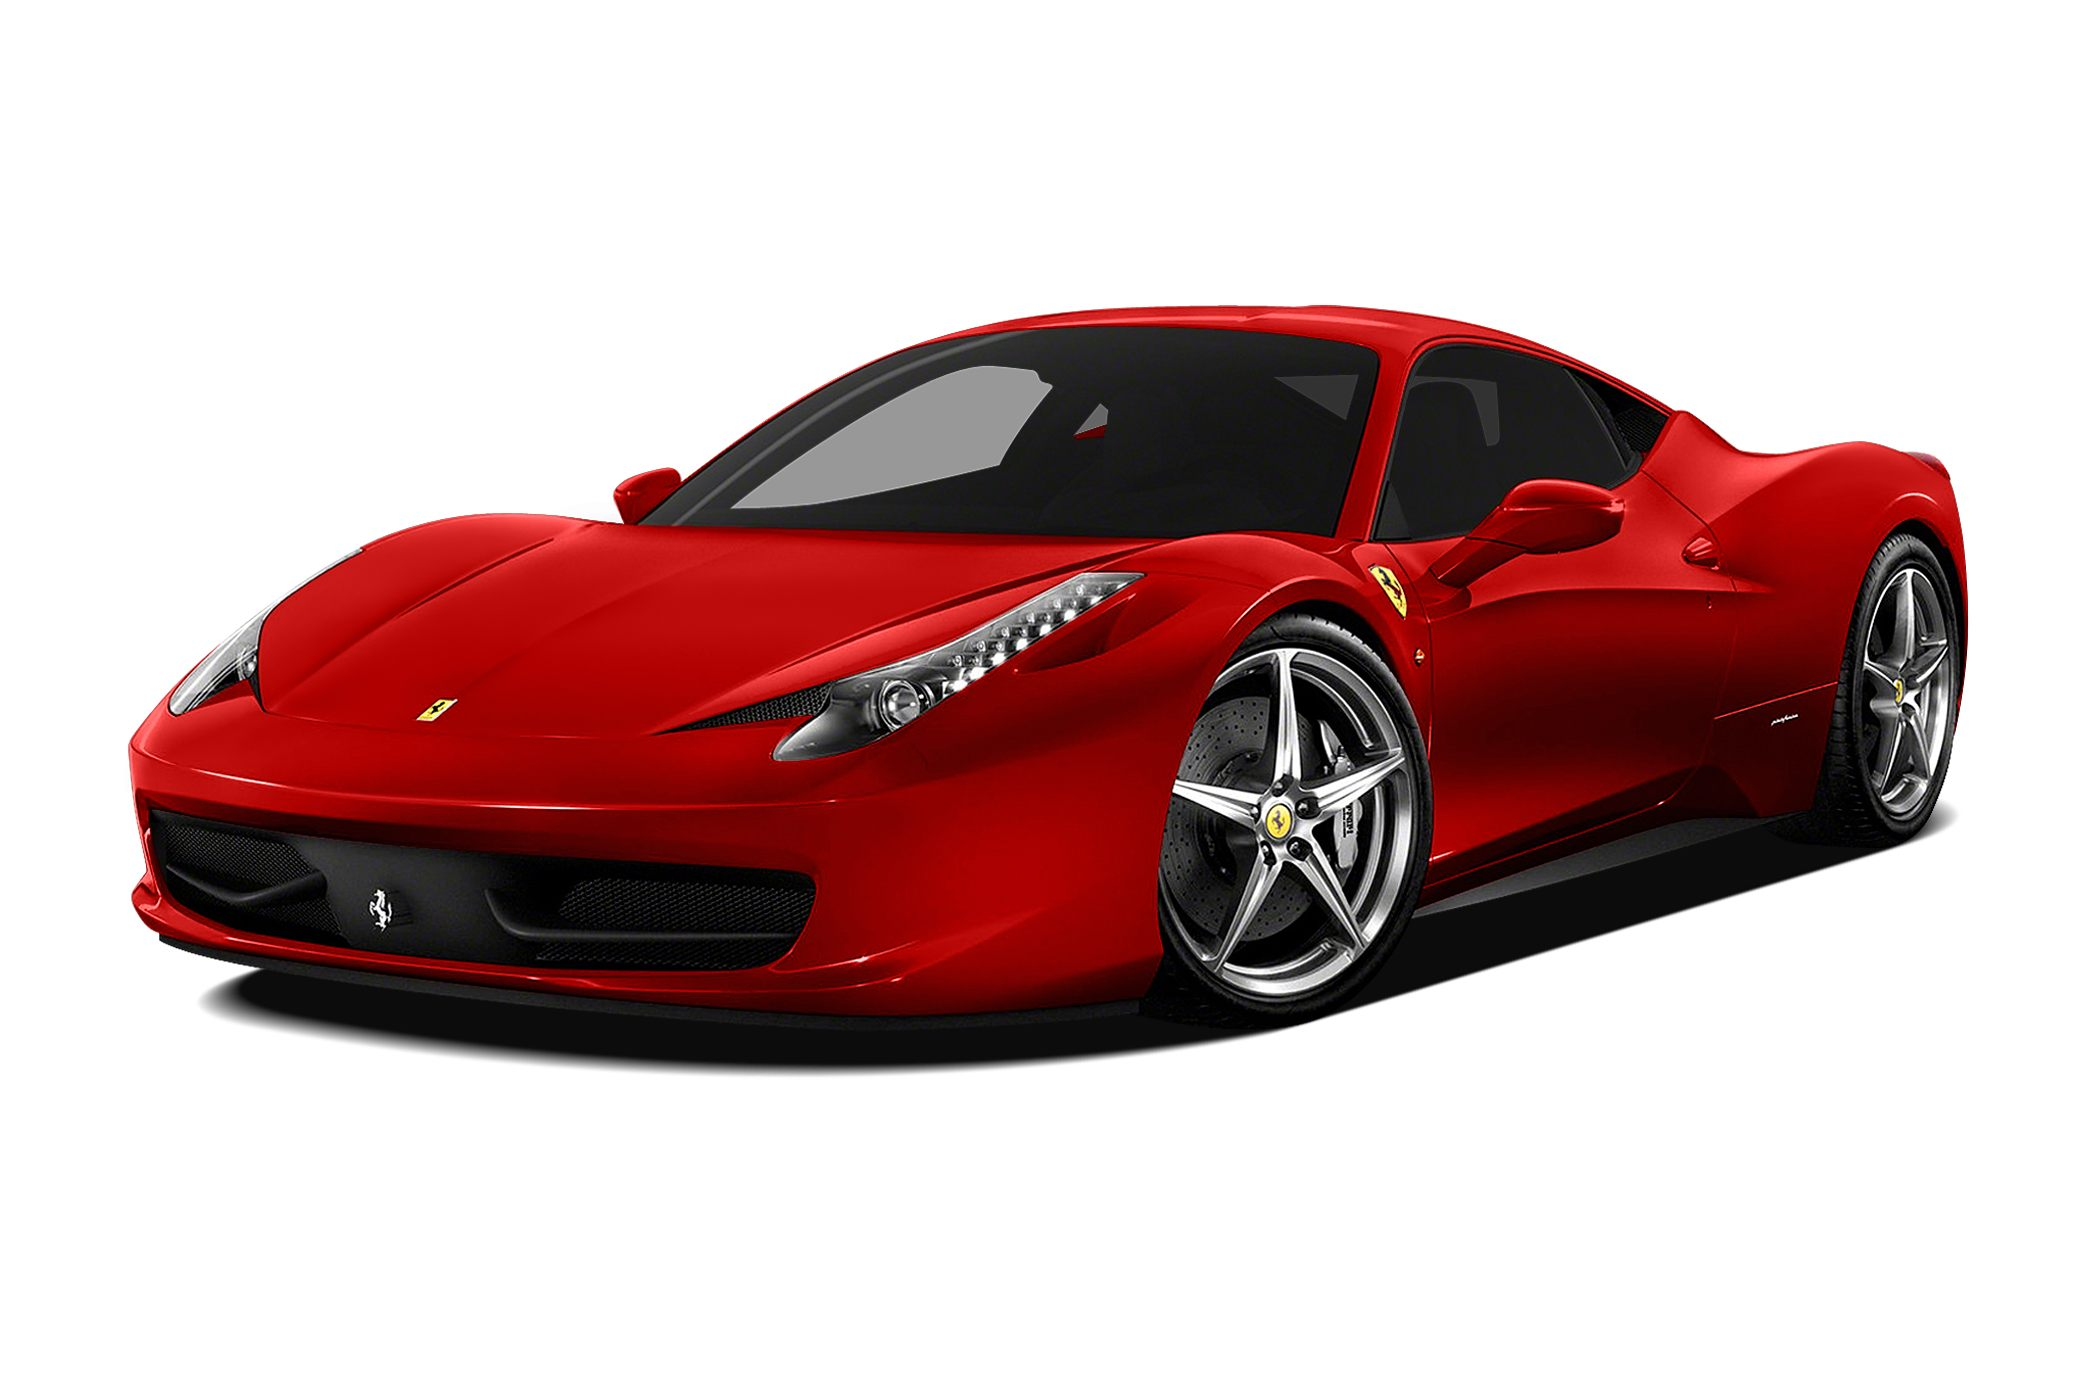 2011 Ferrari 458 Italia Base Coupe for sale in Pittsburg for $225,995 with 3,681 miles.